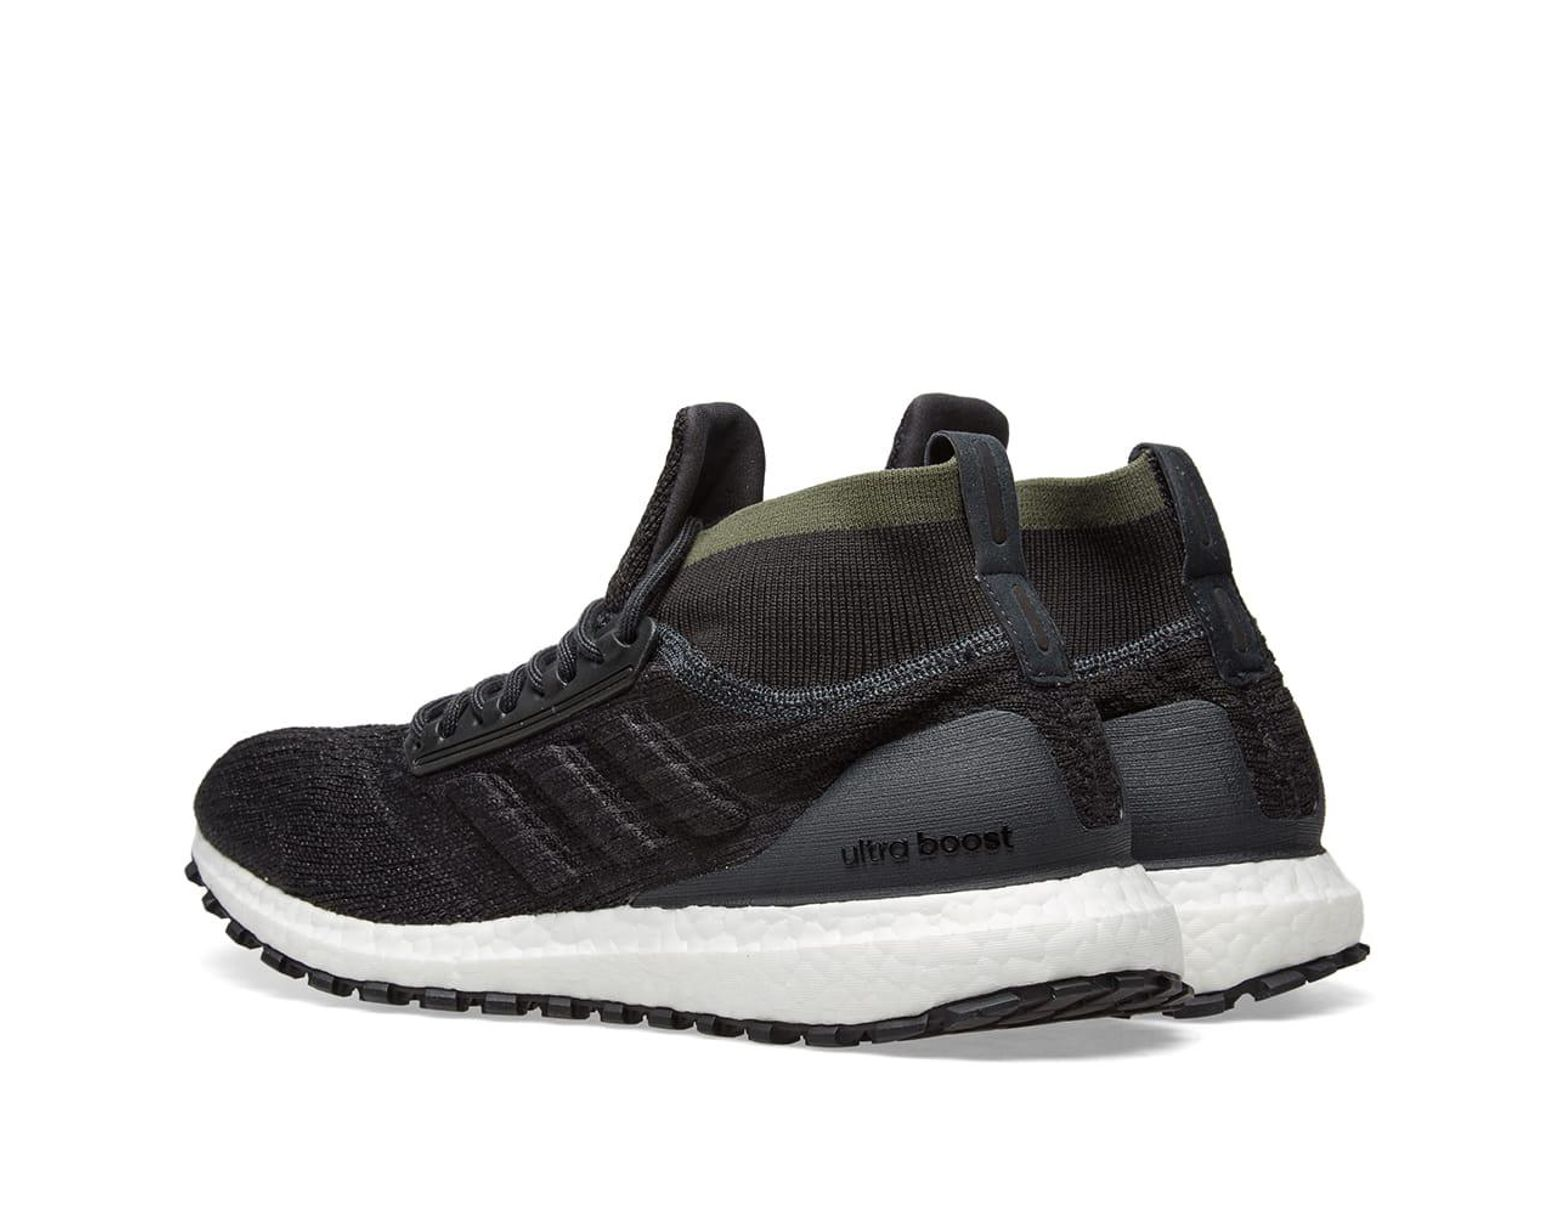 new products 9fa9c 4a531 Men's Black Ultra Boost All Terrain